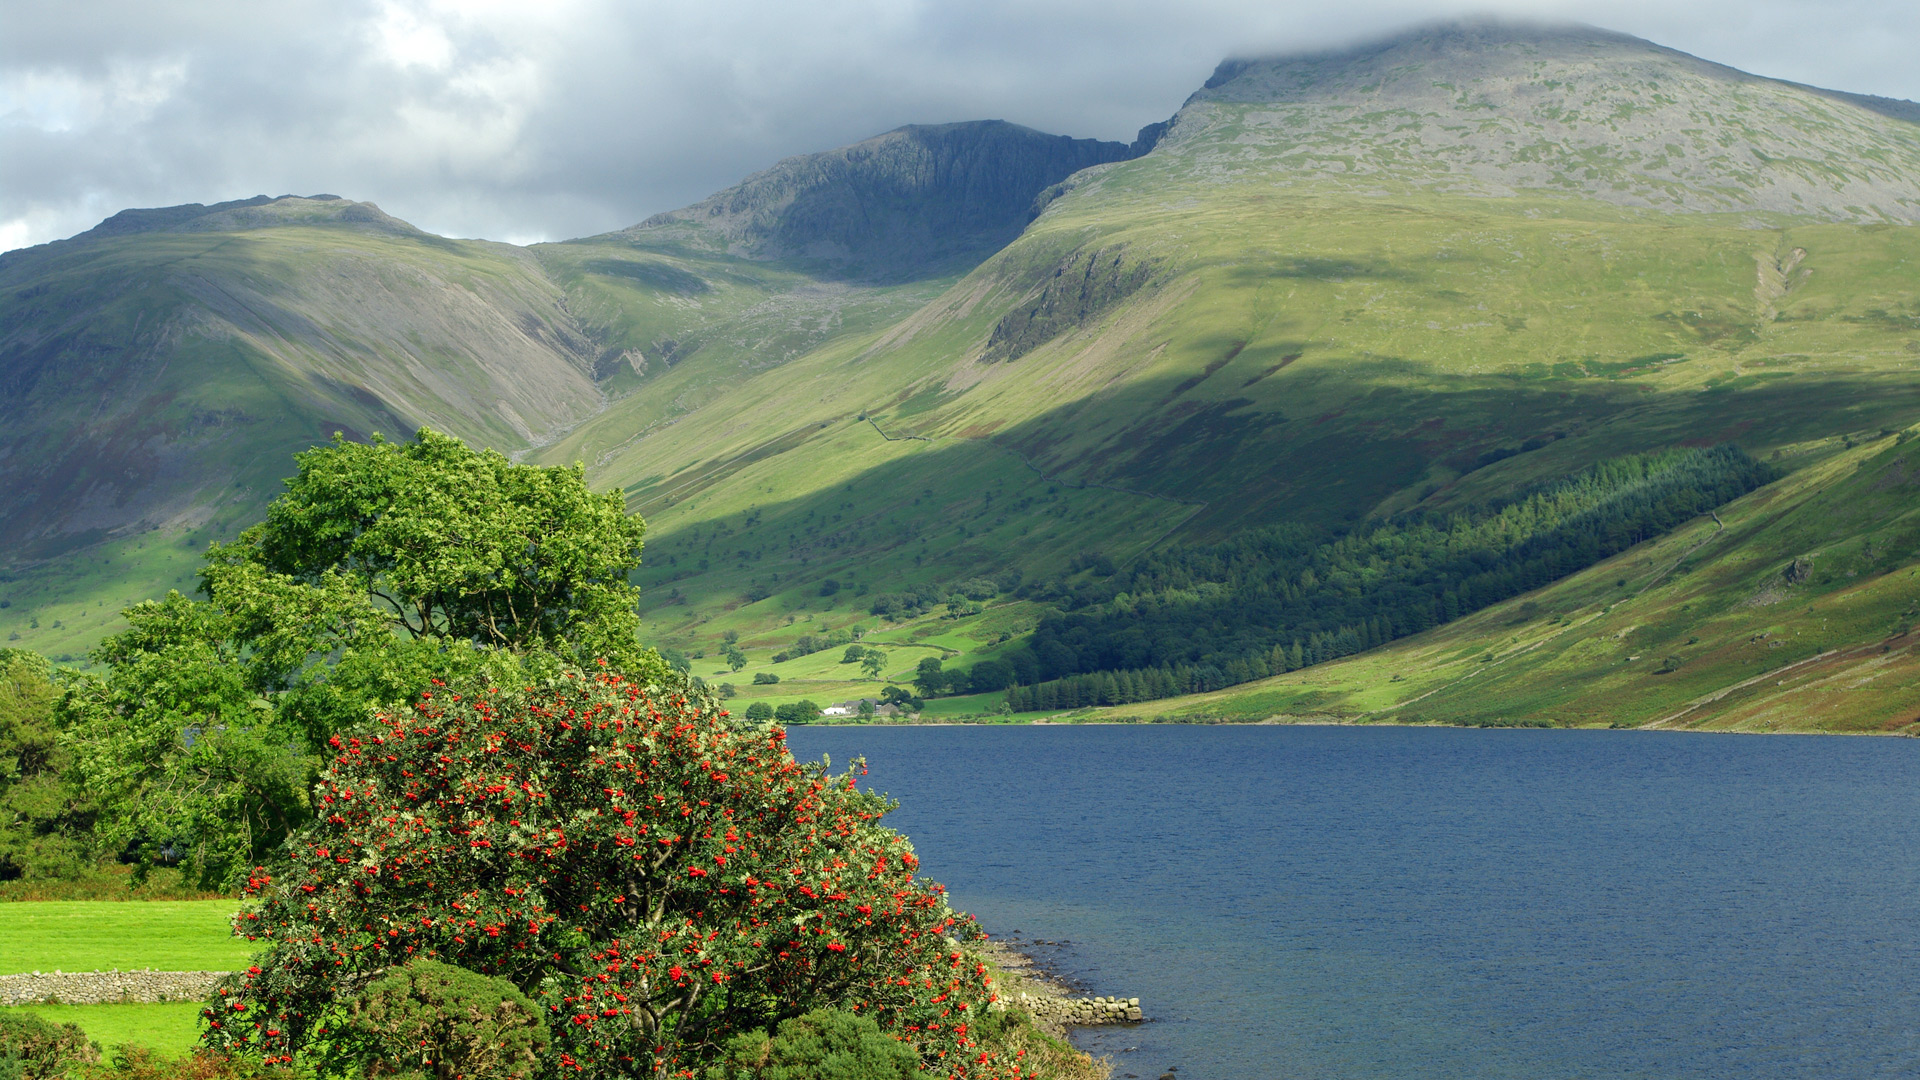 lake district mountain rowan tree covered red berries